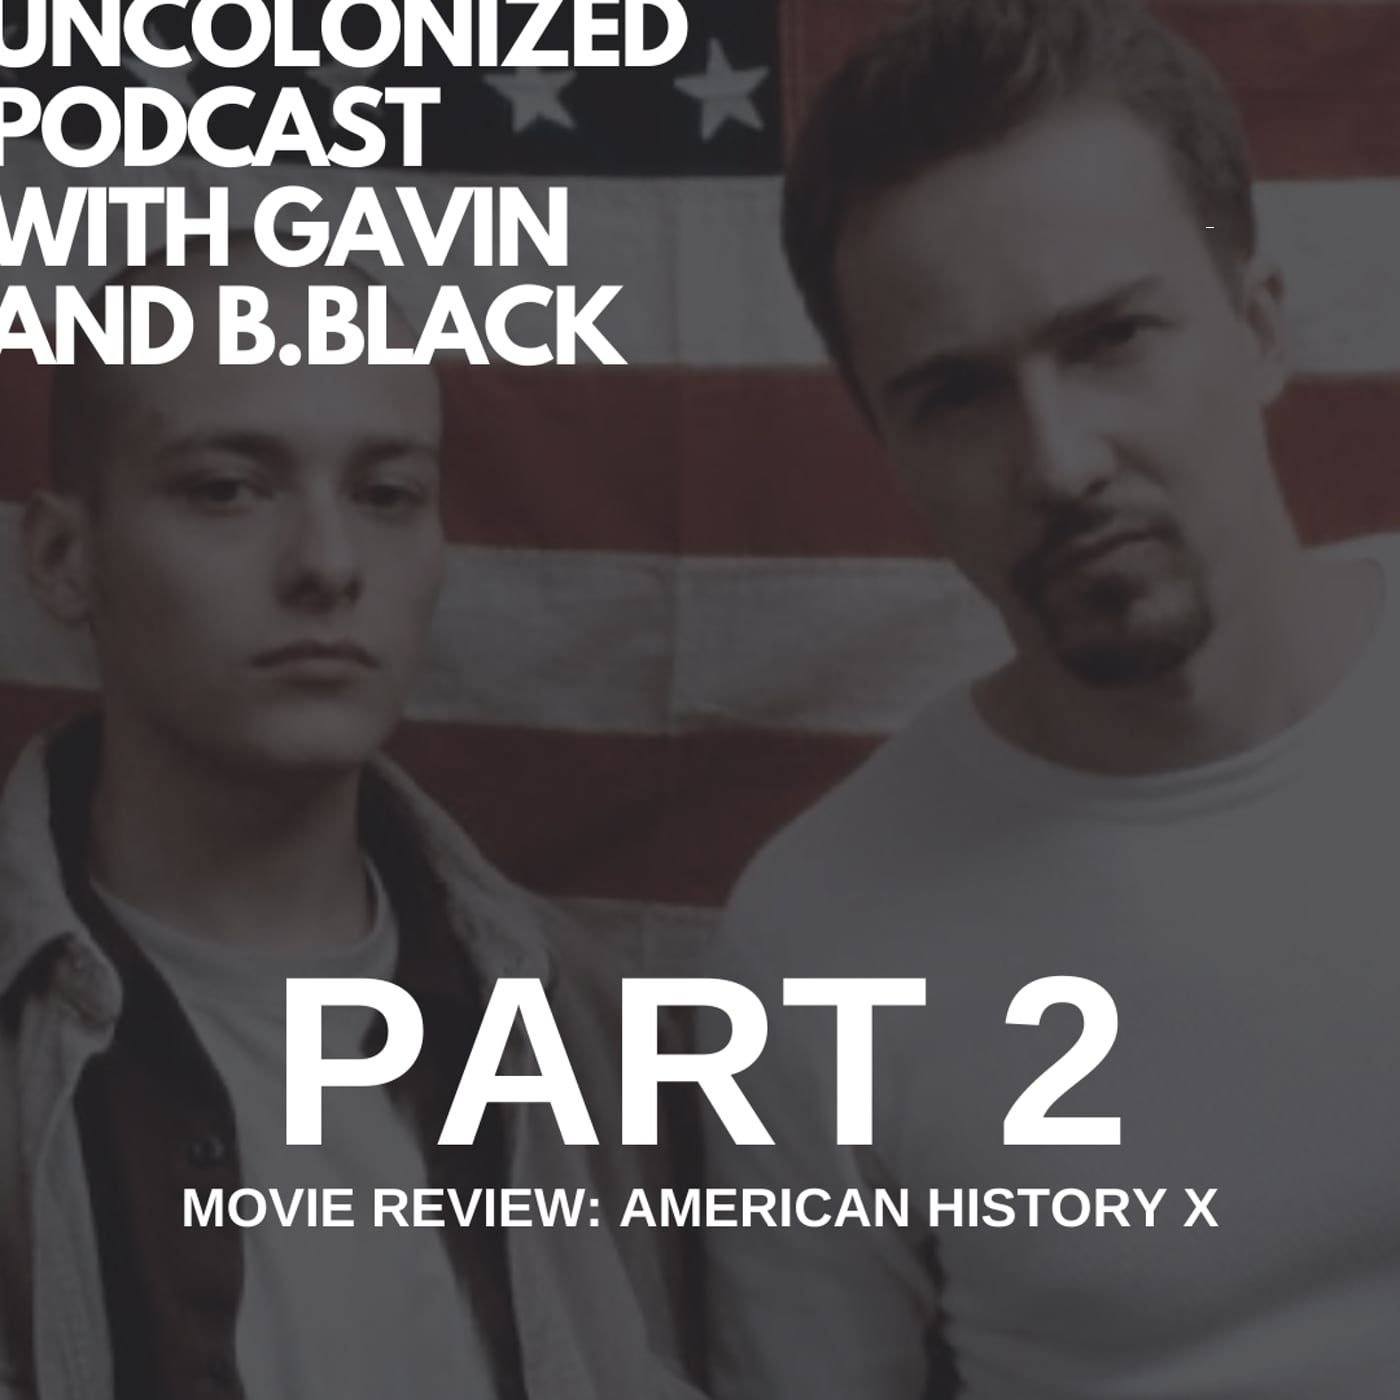 S04E28 - American History X Review (Part 2)